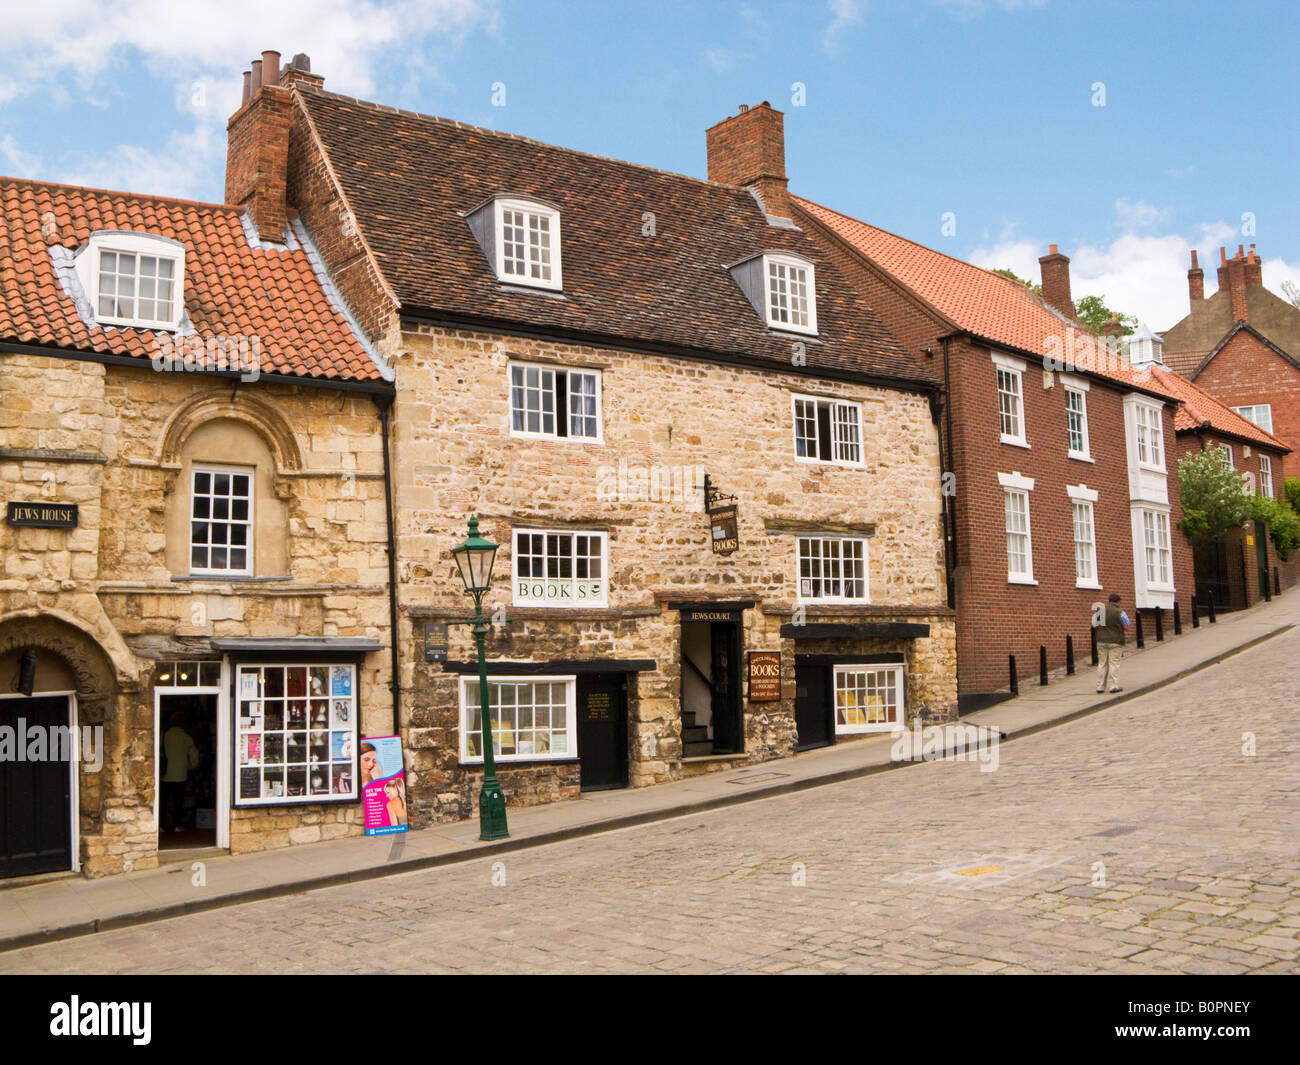 Jews Court on Steep Hill in Lincoln UK - an ancient medieval Jewish synagogue now a bookshop - Stock Image